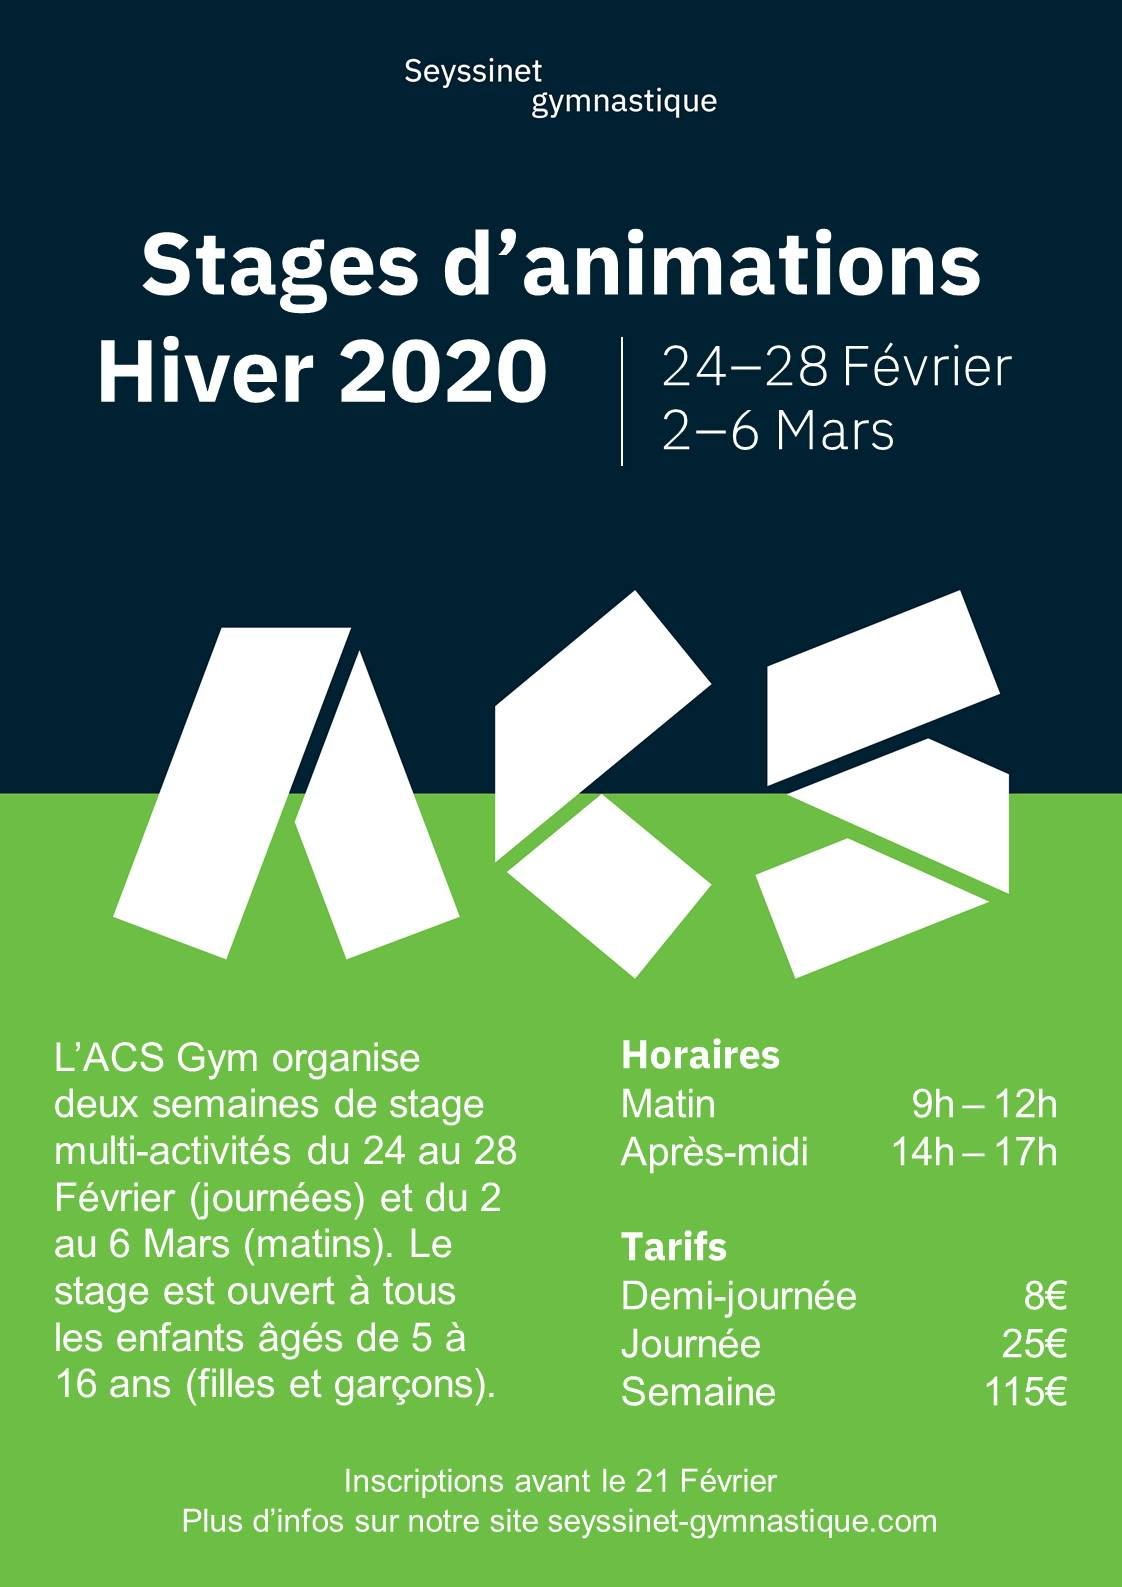 ACS_Stages hiver 2020